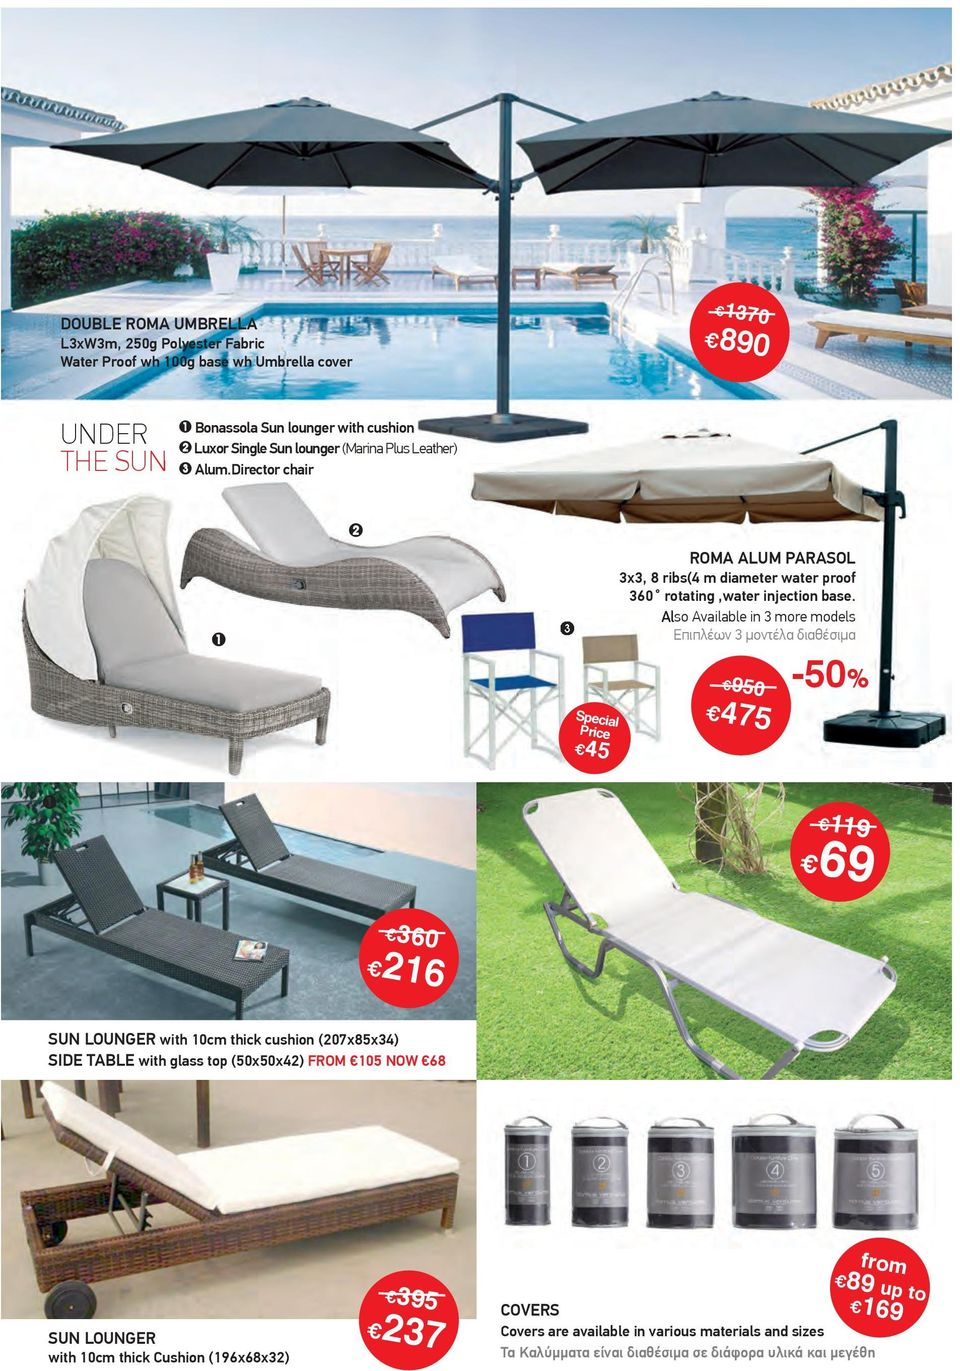 Also Available in more models Επιπλέων μοντέλα διαθέσιμα 950 475-50% 9 69 60 6 SUN LOUNGER with 0cm thick cushion (07x85x4) SIDE TABLE with glass top (50x50x4) FROM 05